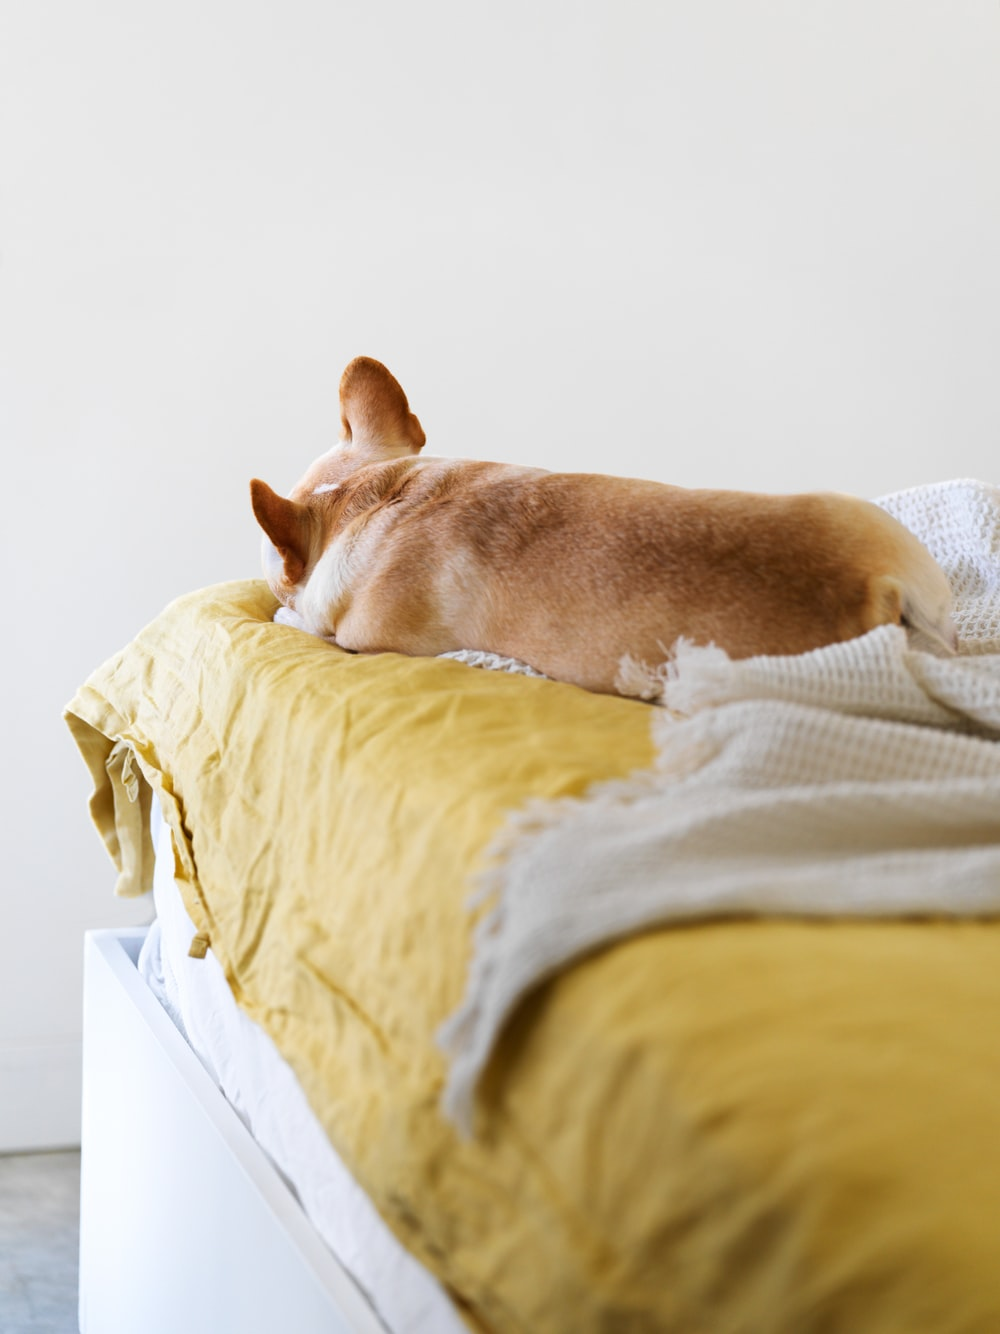 brown short coated dog lying on white bed